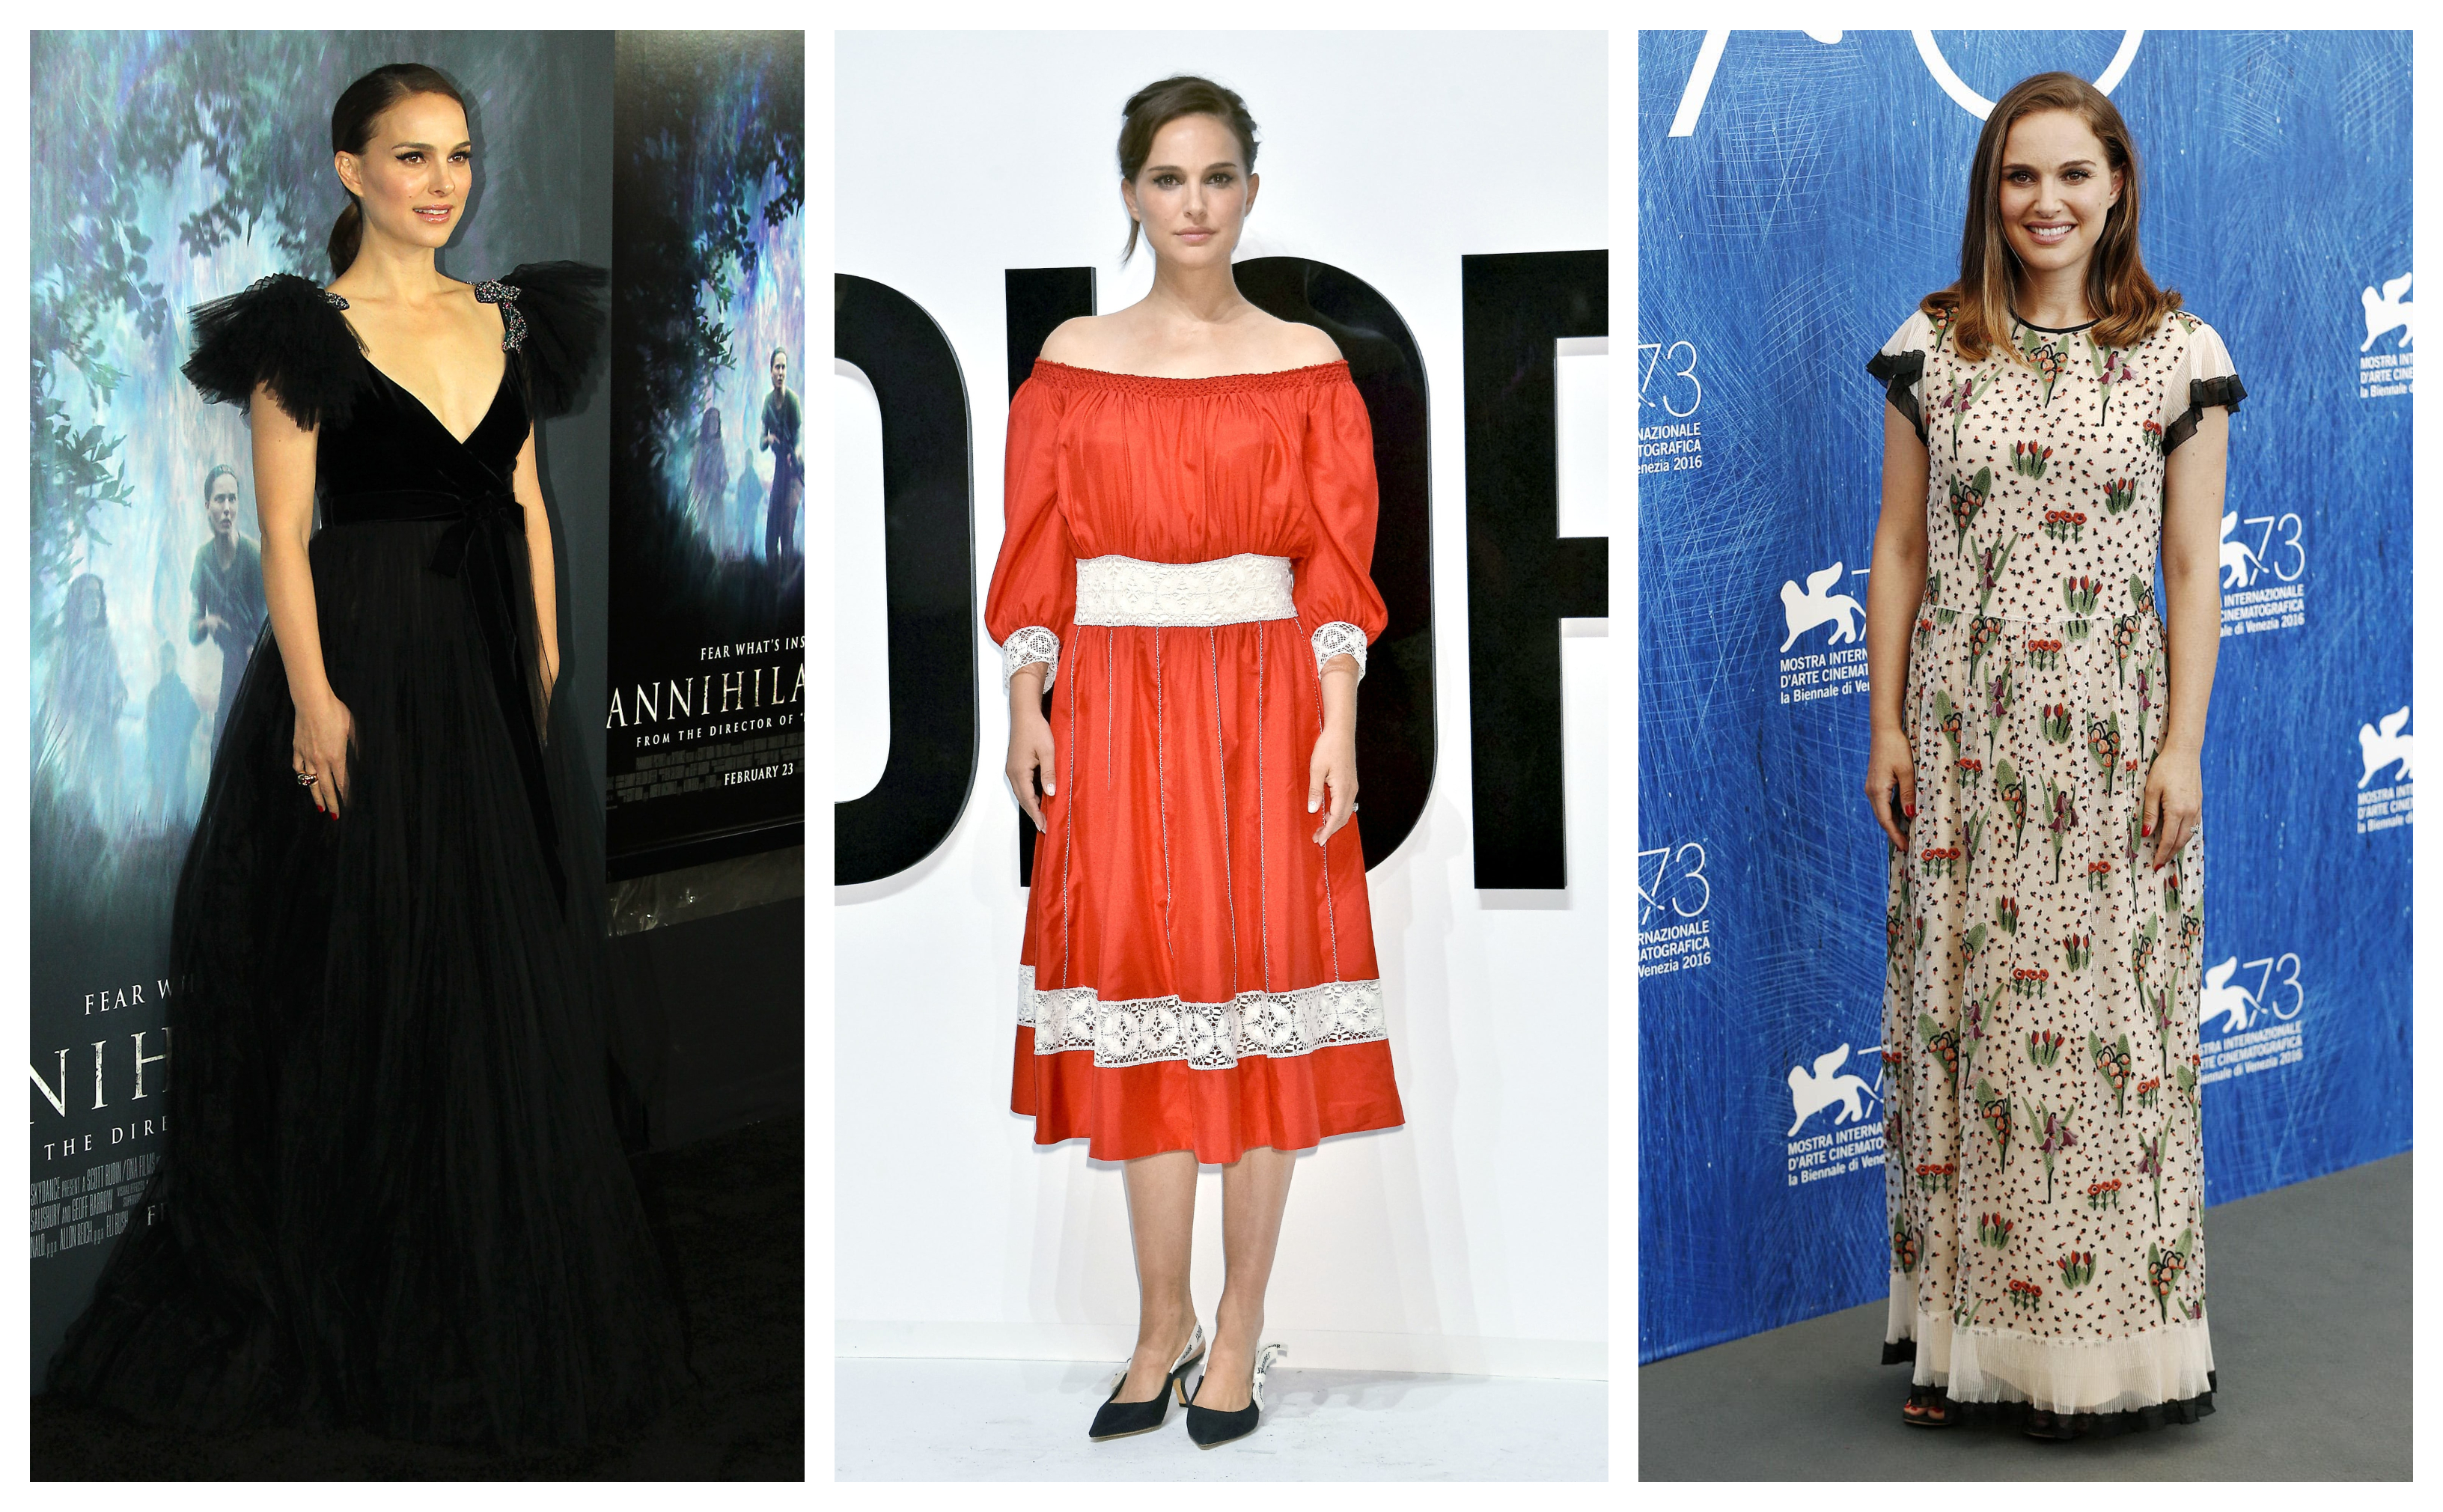 From architectural masterpieces to classic old Hollywood glamour, to boho-inspired outfits, Portman has had some stand-out red carpet moments. (Photo: WENN)